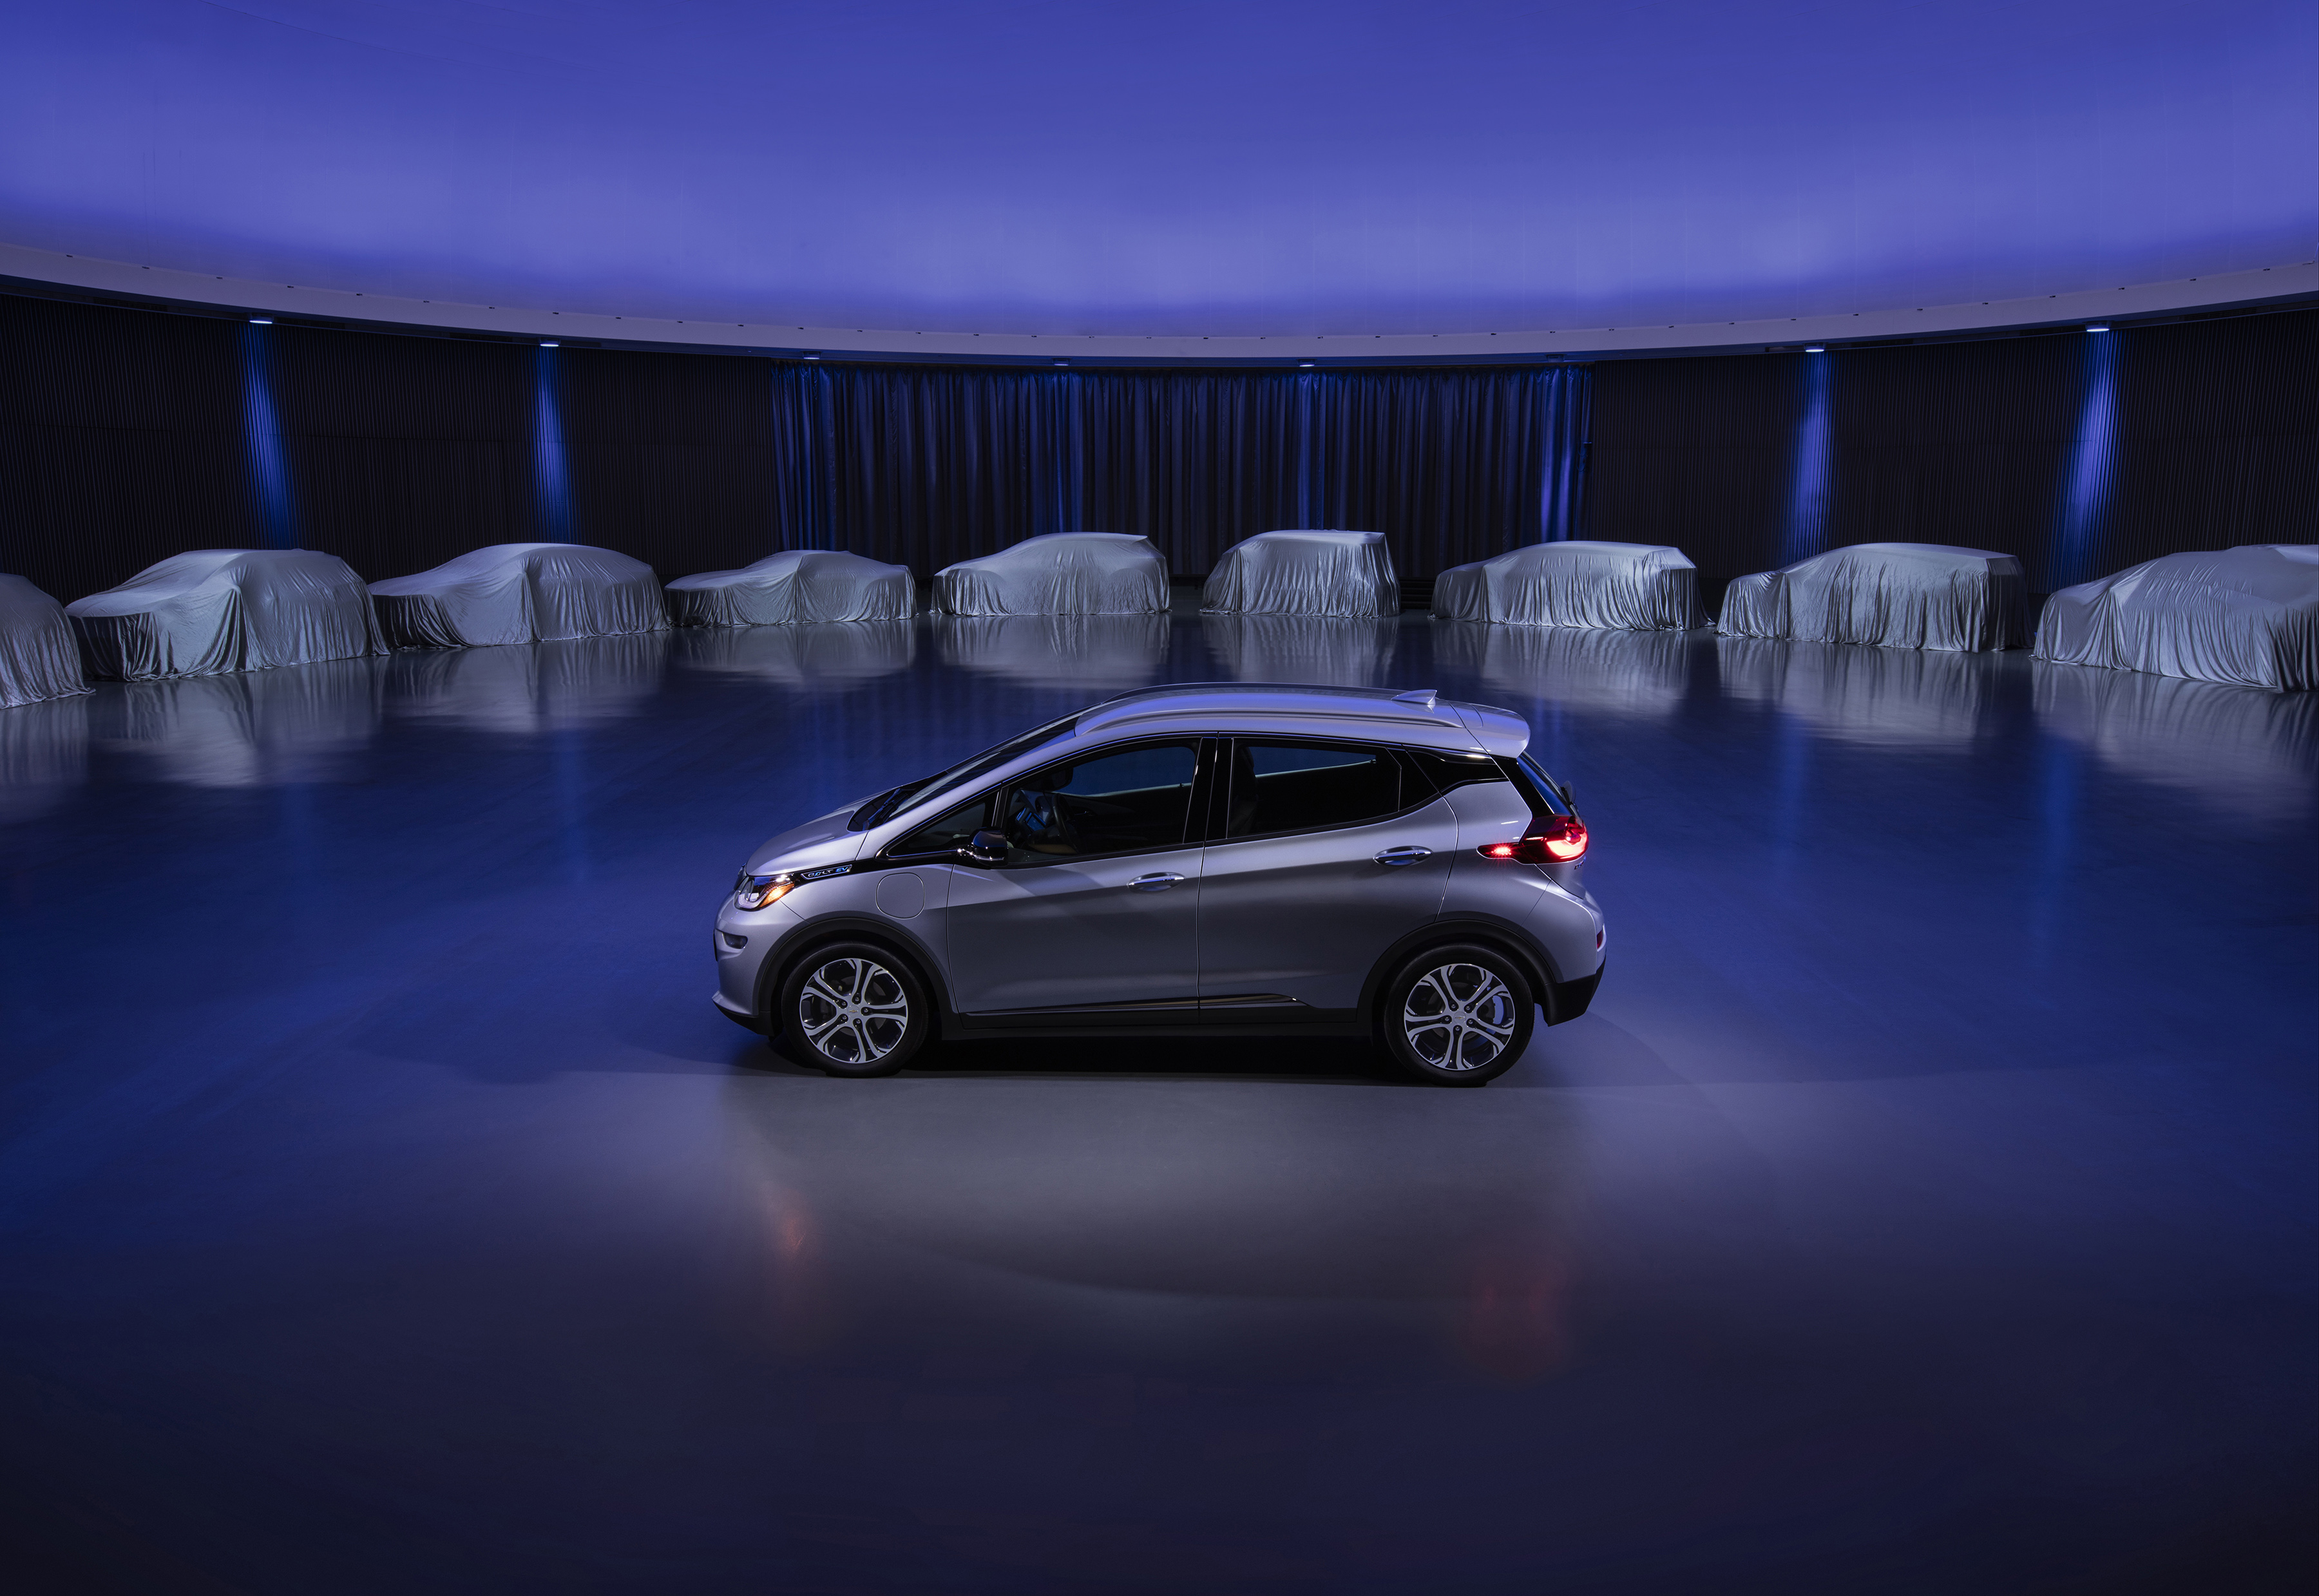 GM to Launch 20 EVs by 2023